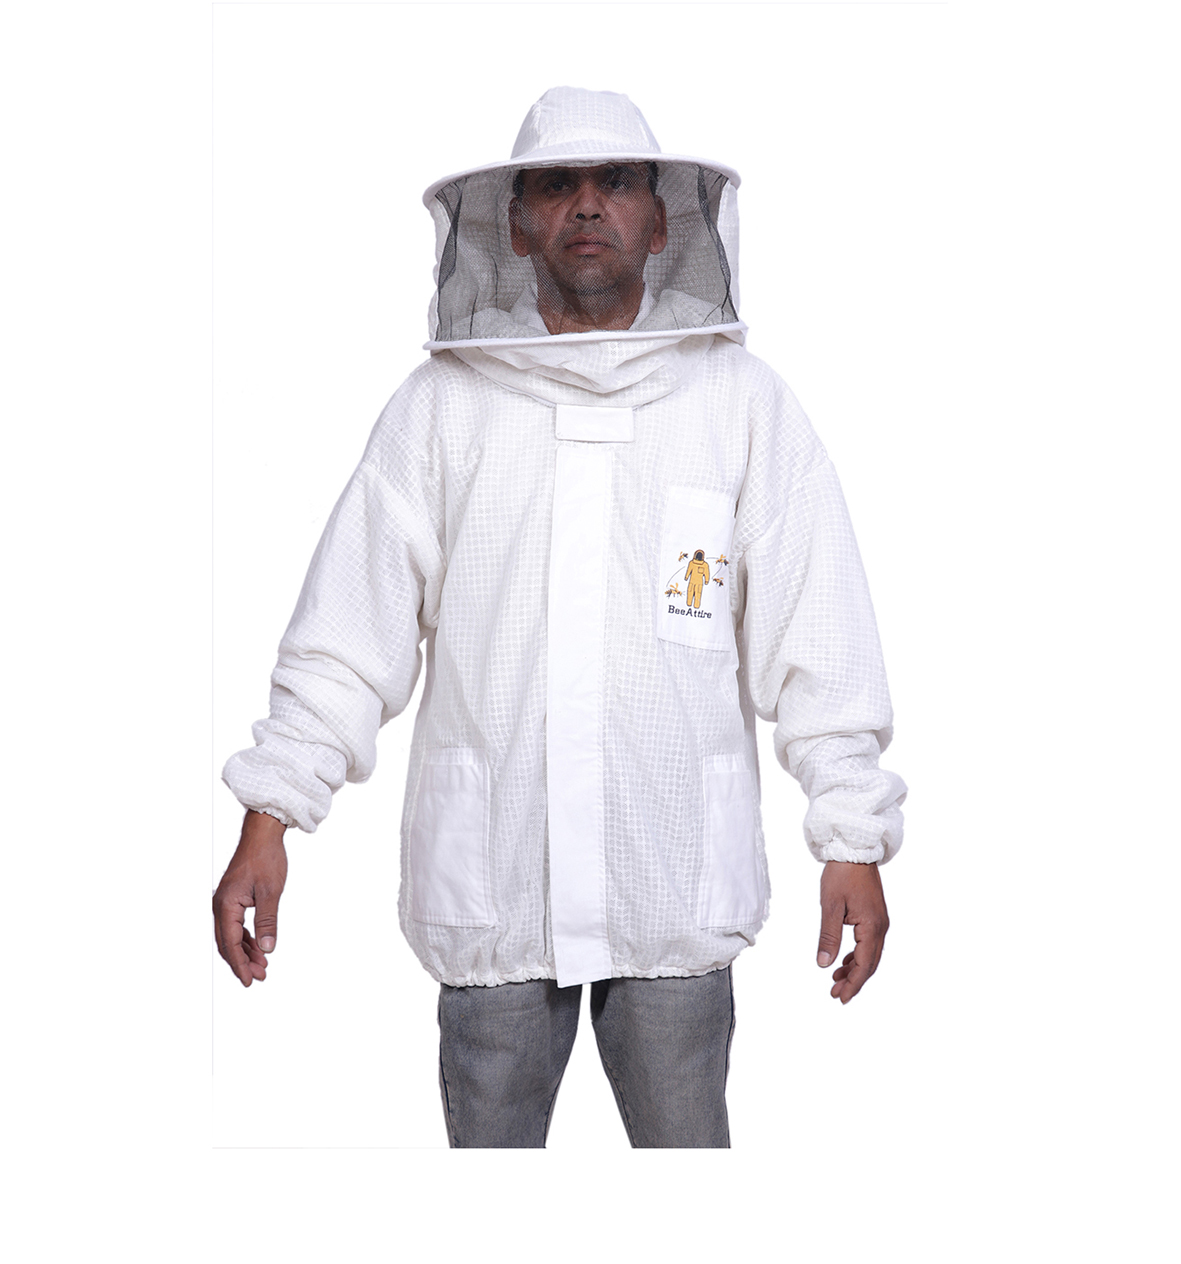 4XL Ventilated Bee Suit 3 layer mesh Beekeeping costume Beekeeper Ultra vented